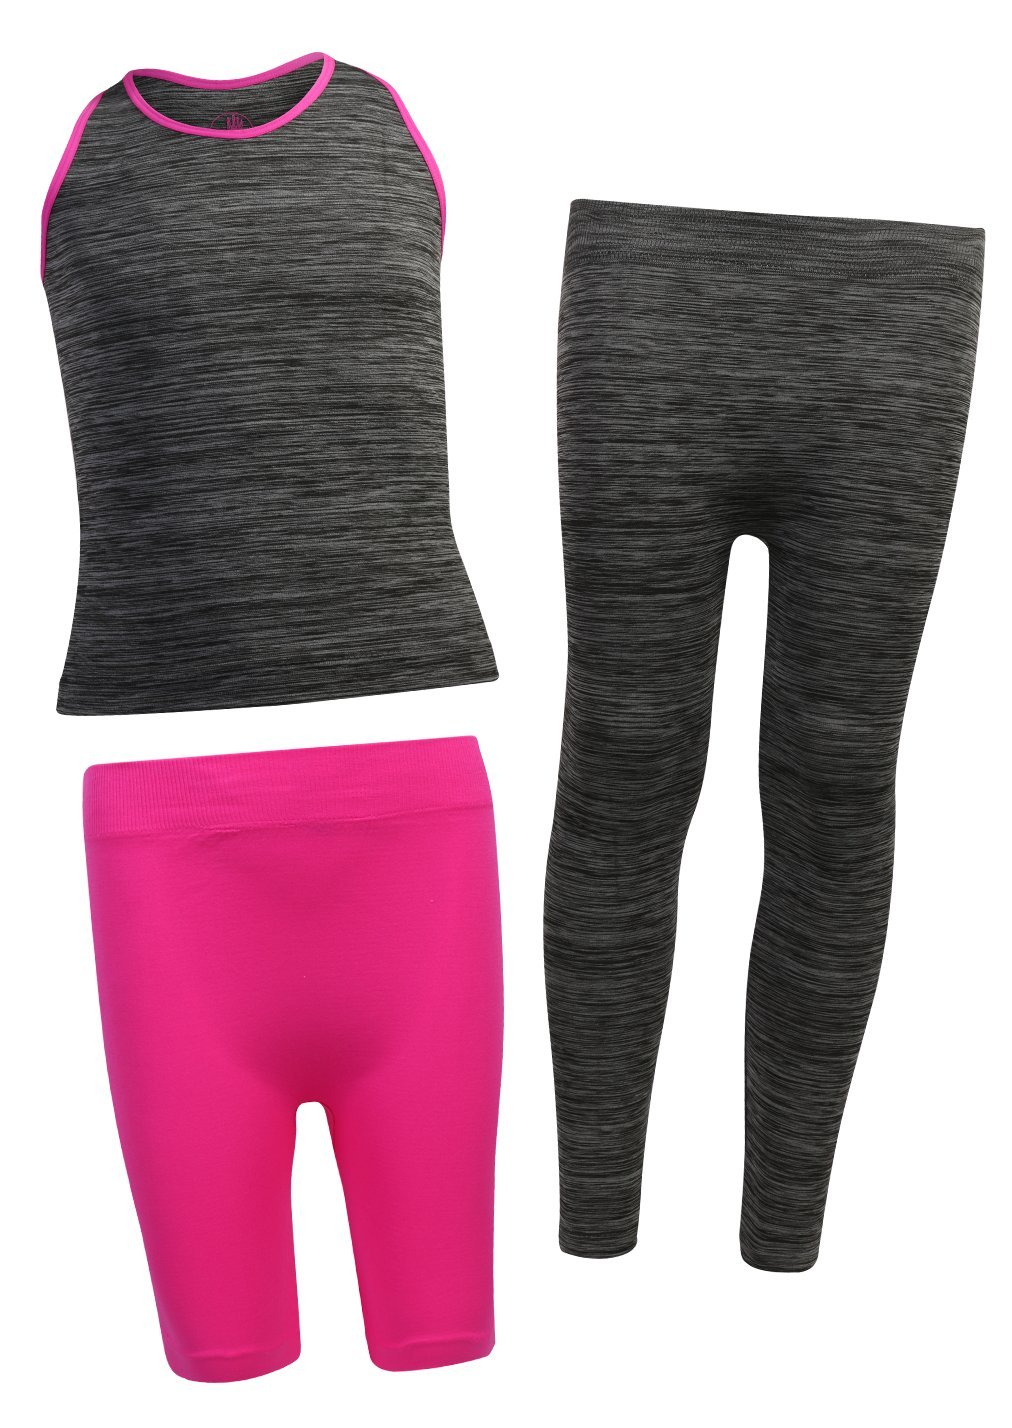 Body Glove Girl's 3 Piece Athletic Shorts, Legging and Tank Top Sets